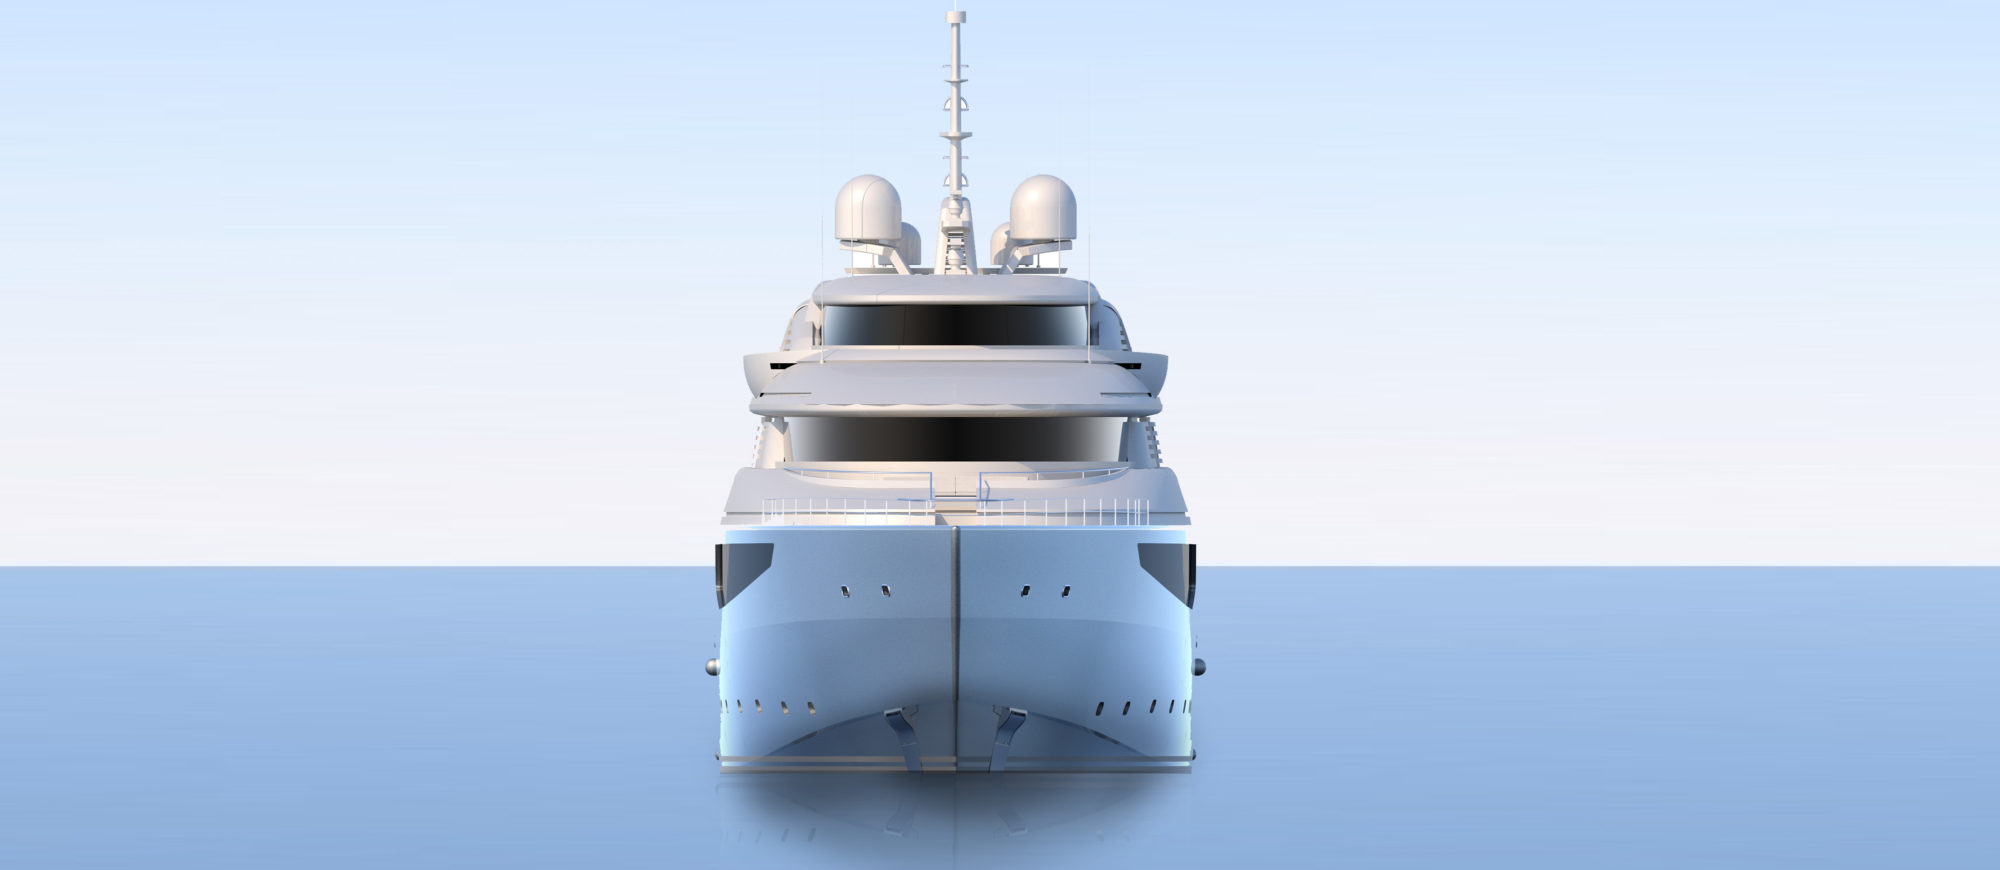 Conrad C233 Superyacht Concept Vallicelli Visualisation Front Profile